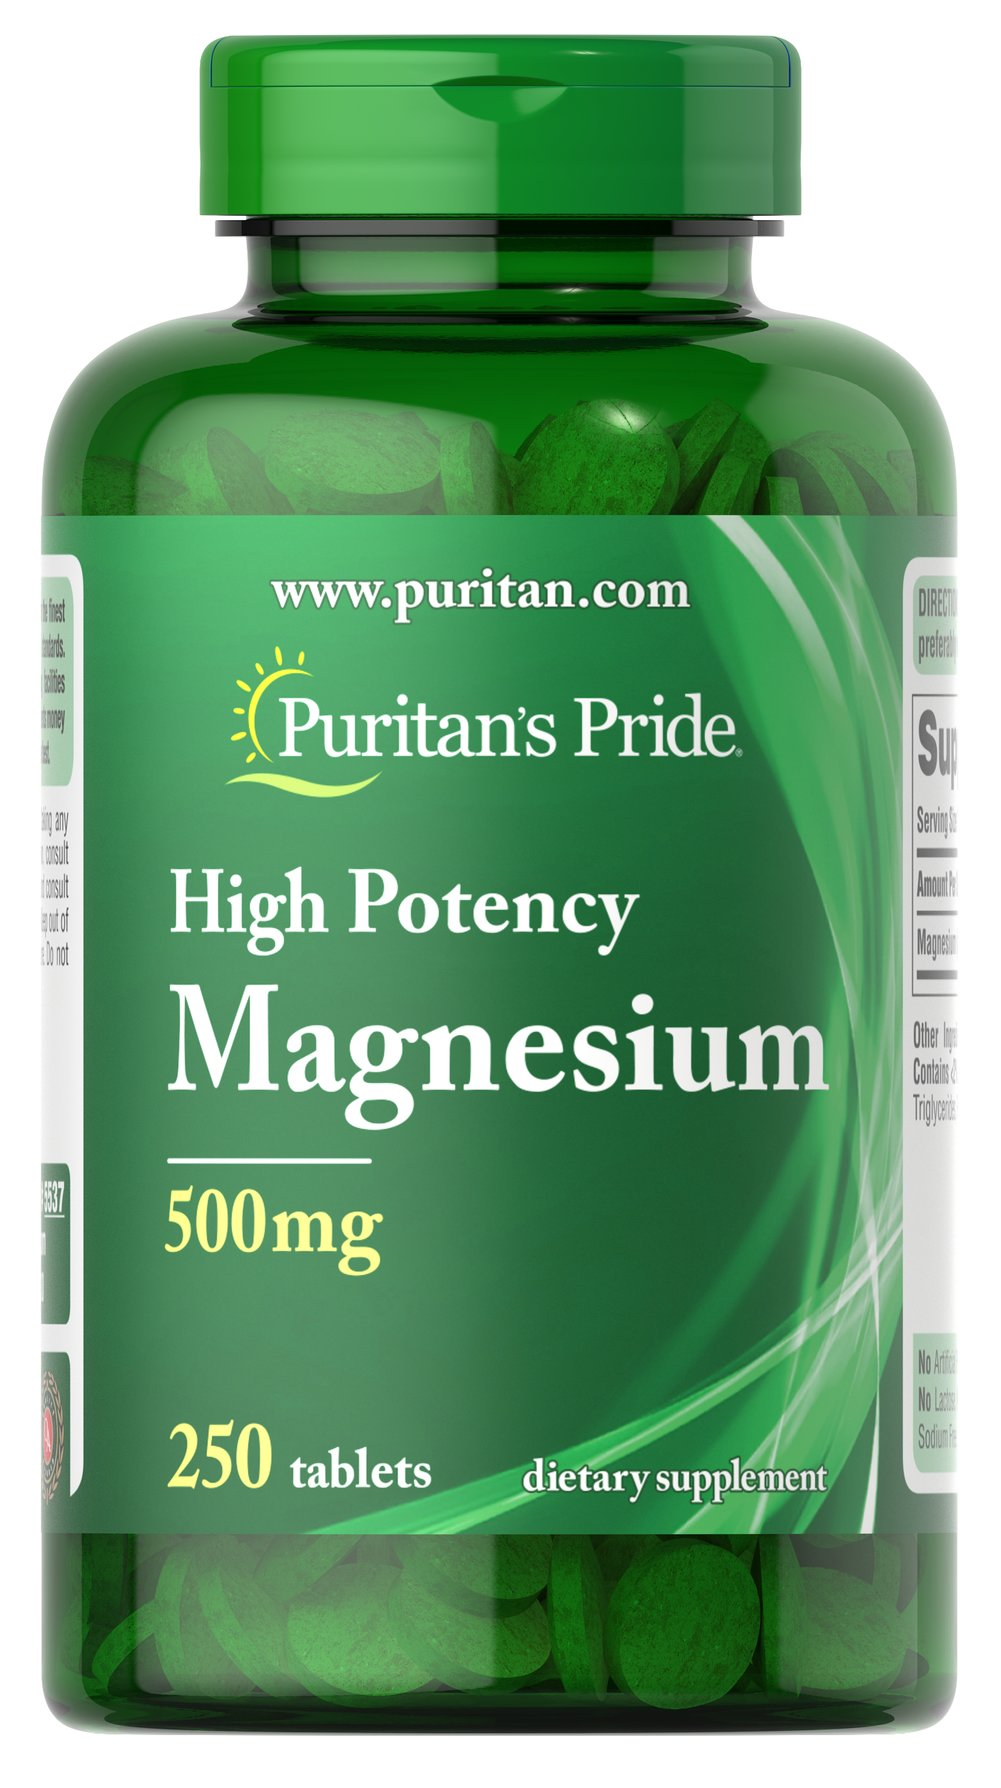 Magnesium 500 mg <p>Magnesium offers another option, besides Calcium, for supporting bone health.** Magnesium plays an essential role in maintaining bone mineralization, and is also involved in muscle contractions and nerve impulses.** Adults can take one caplet daily with a meal.</p> 250 Tablets 500 mg $16.79